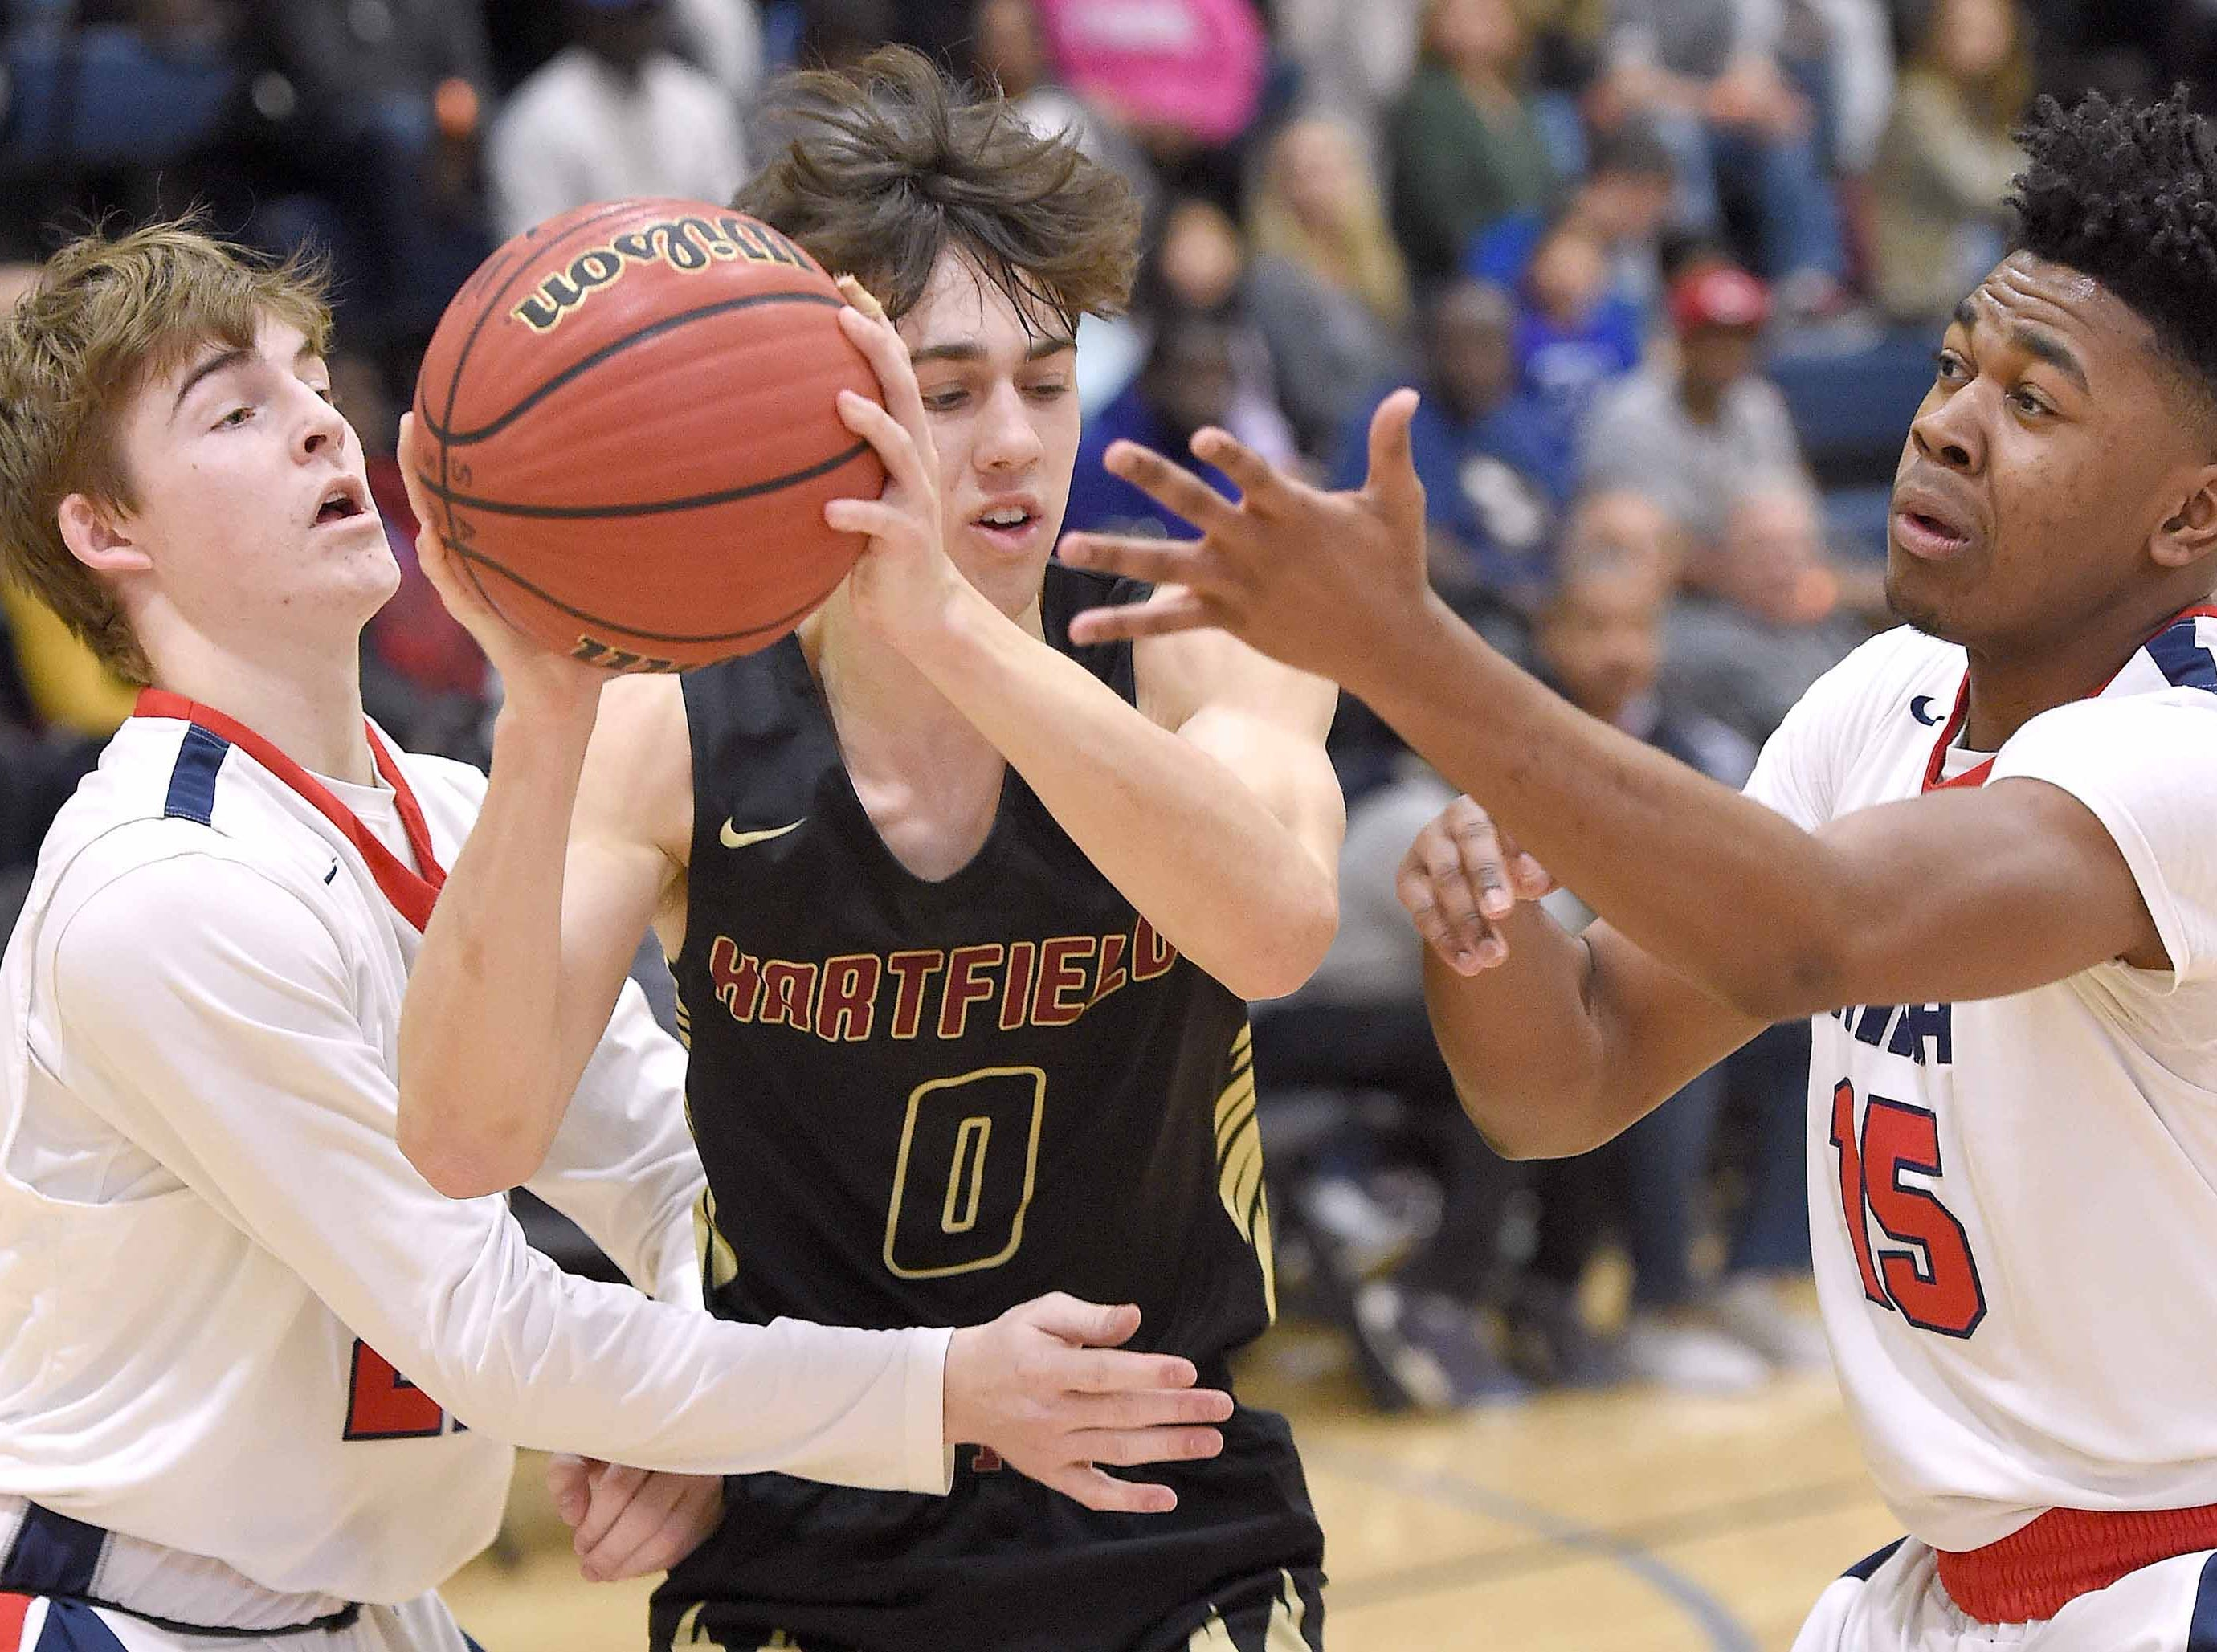 Hartfield's Hill Savell (0) is double teamed by two MRA defenders including Ryan Kitchens (15) on Monday, January 21, 2019, at the Rumble in the South high school basketball tournament at St. Andrew's Episcopal School in Ridgeland, Miss.